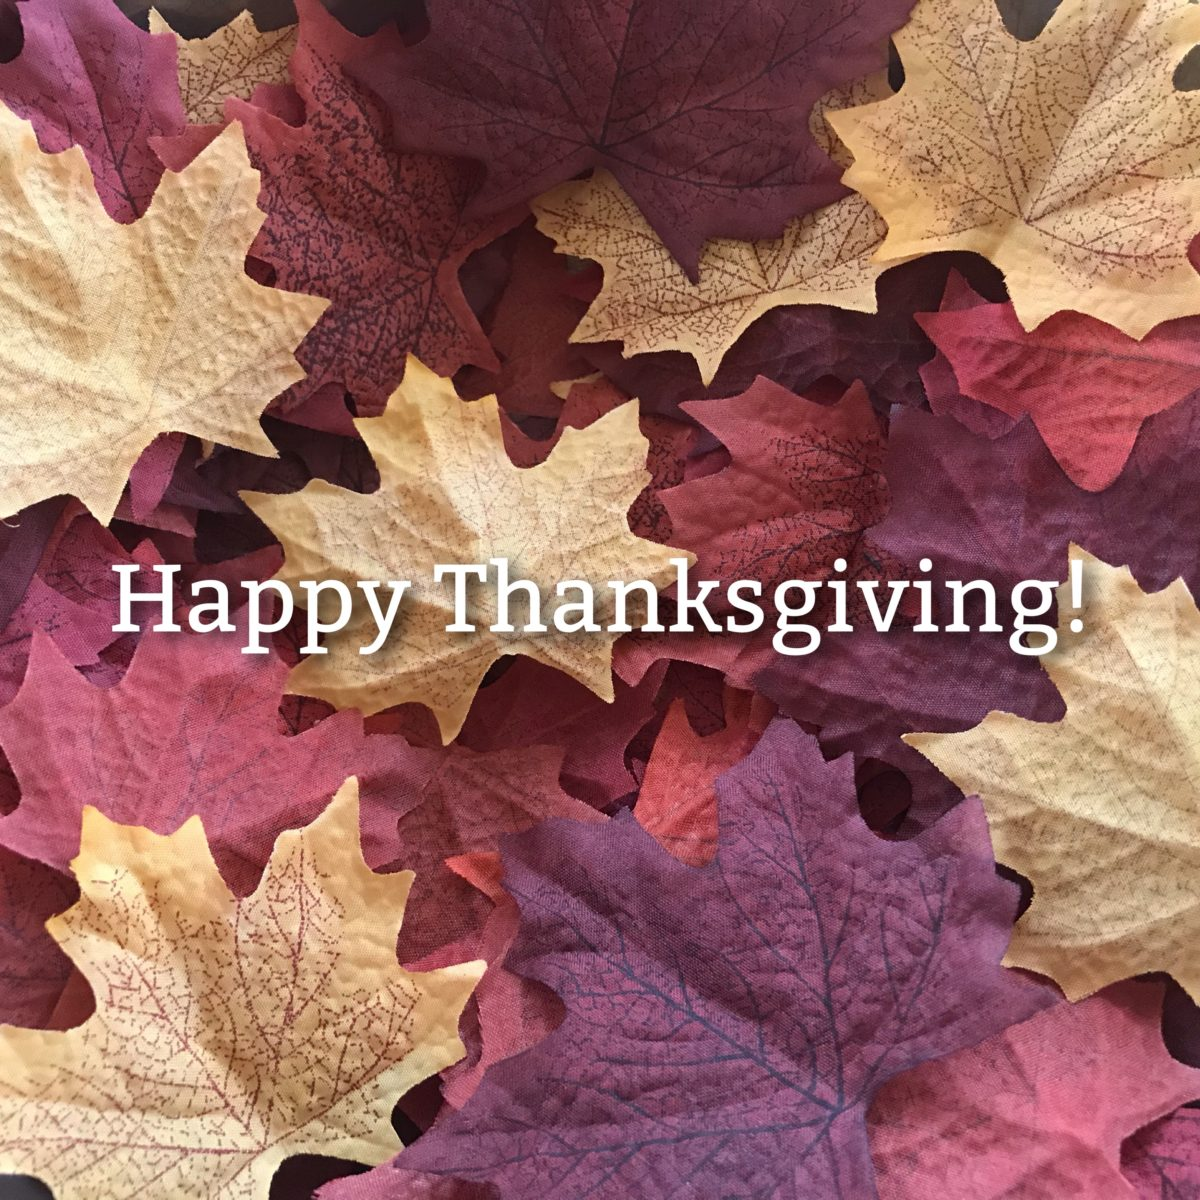 Fall Leaves with Happy Thanksgiving Text